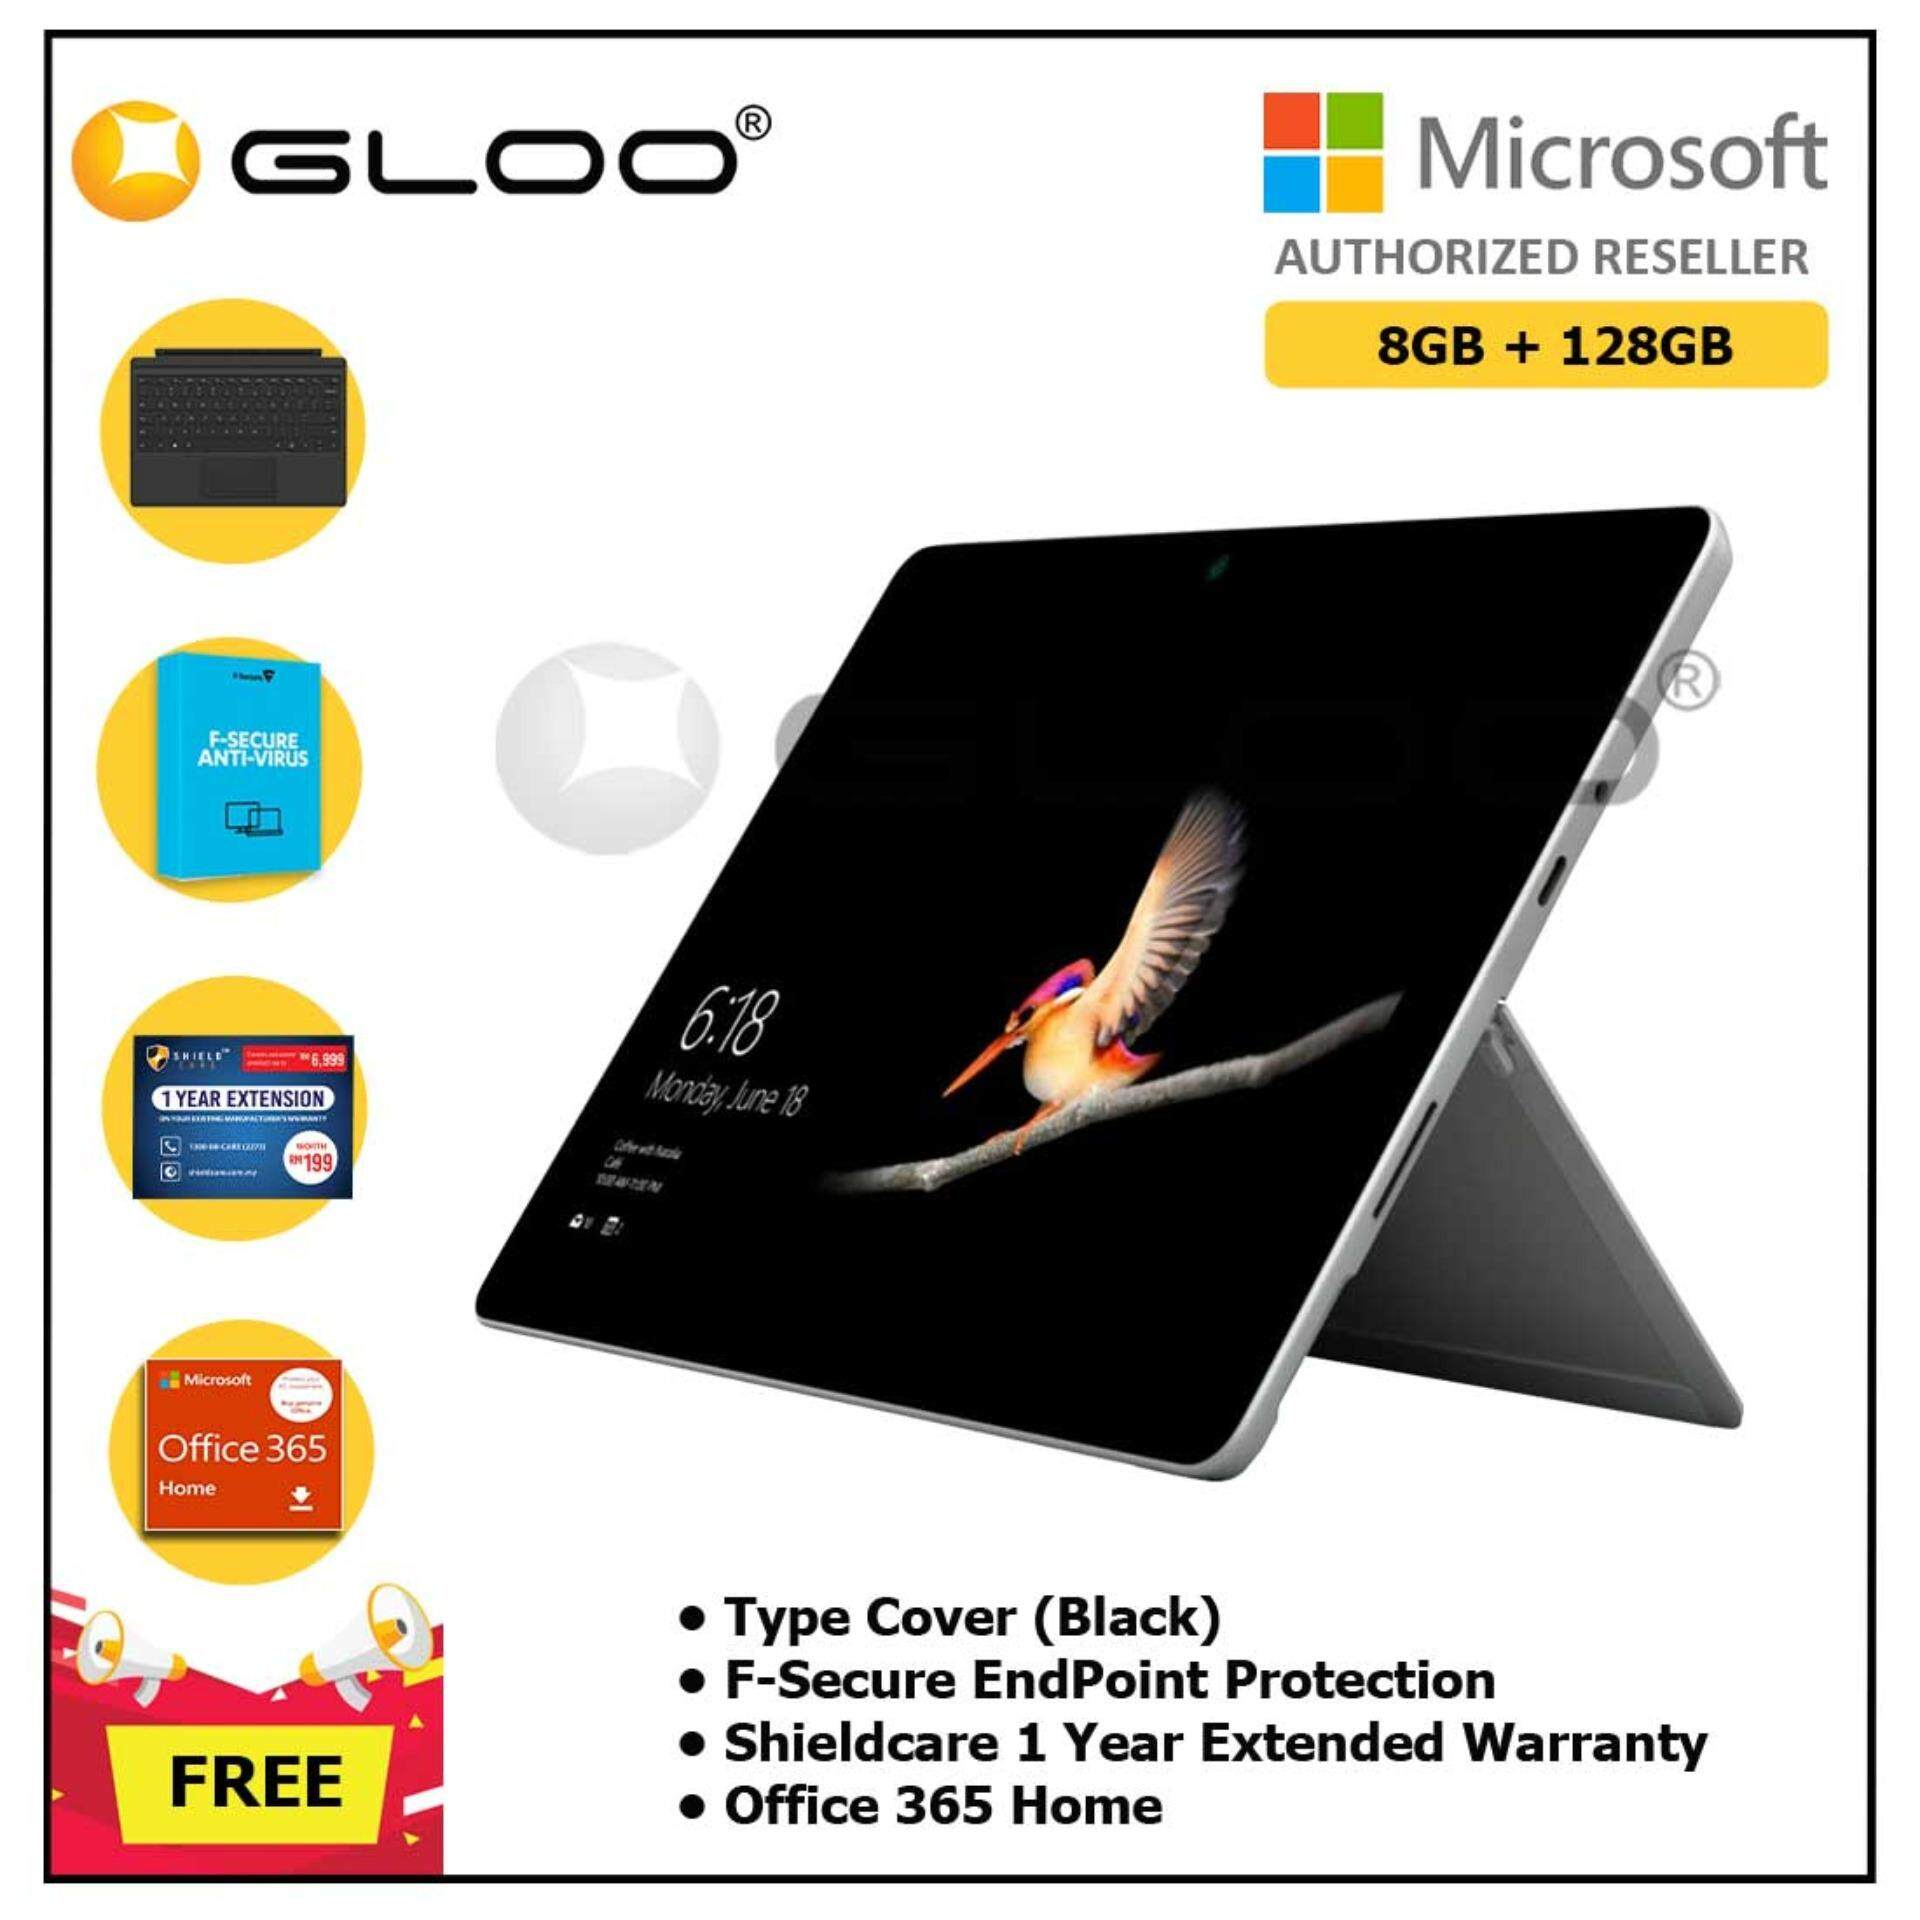 Surface Go Y/8GB 128GB + Surface Go Type Cover Black + Shieldcare 1 Year Extended Warranty + F-Secure End point Protection + Office 365 Home (ESD)